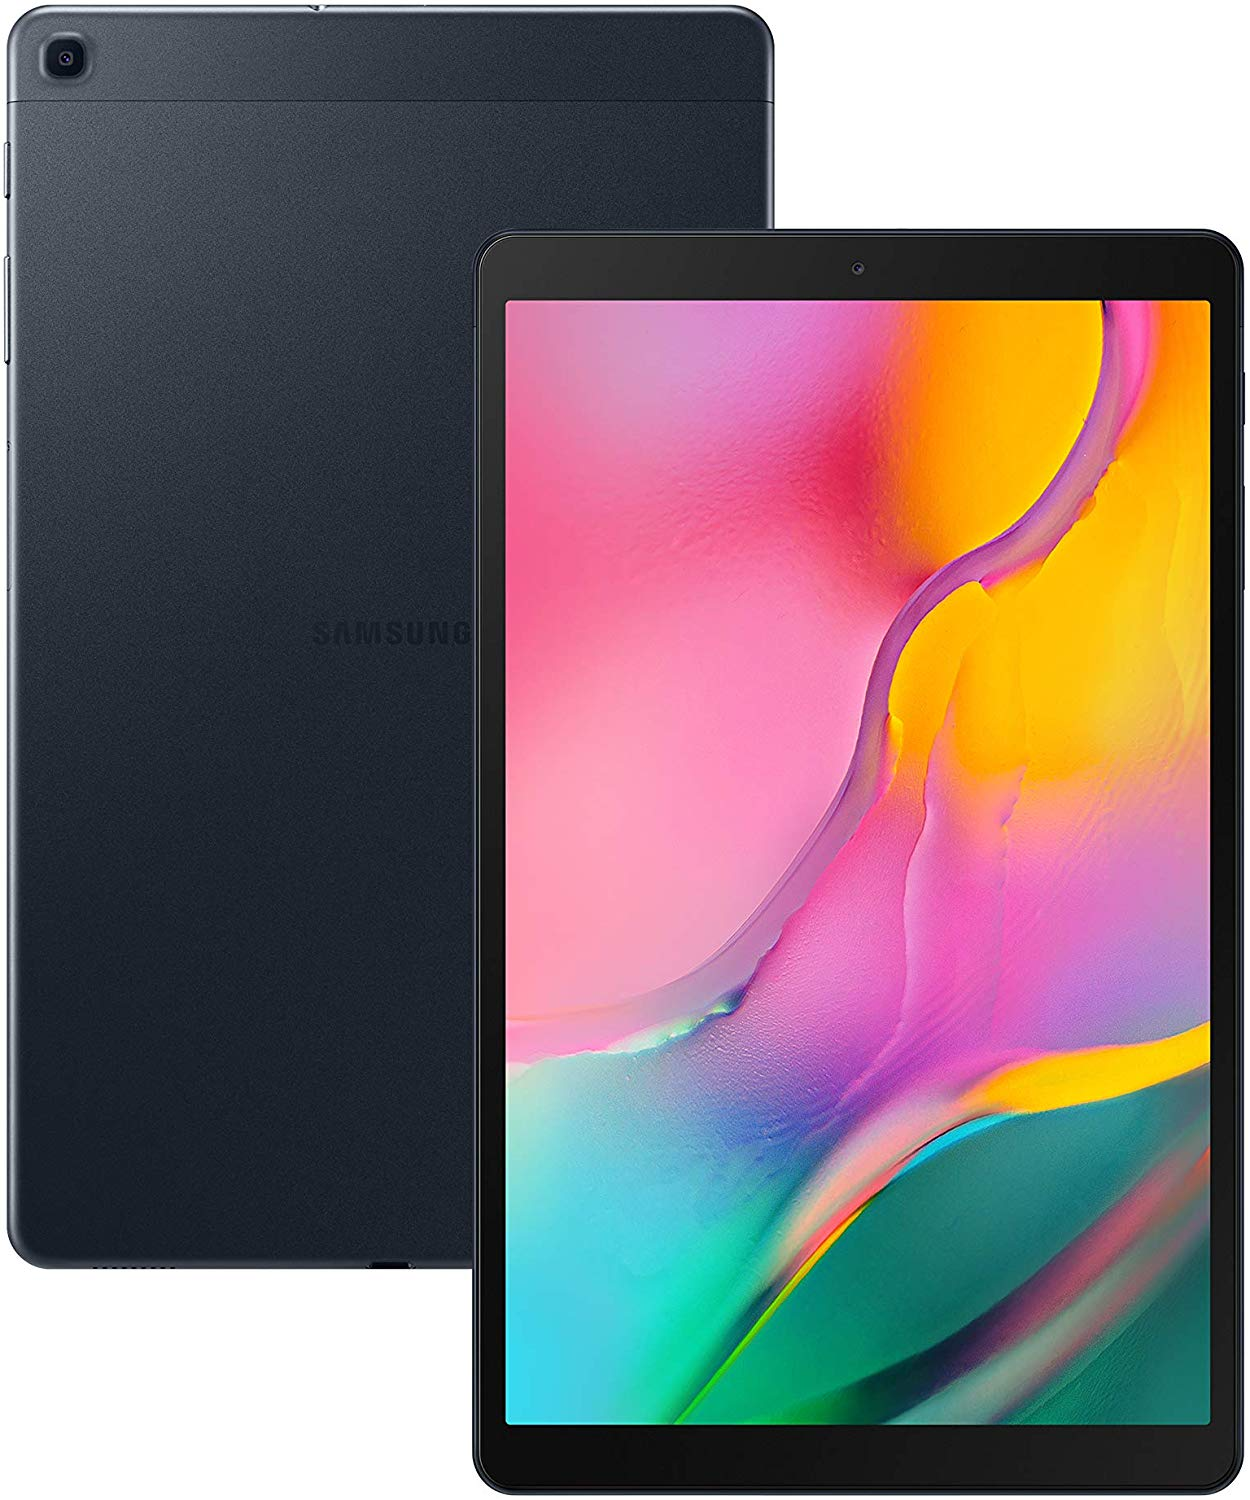 Save £40 Samsung Galaxy Tab A 10.1-Inch 32 GB Wi-Fi – Black (UK Version)